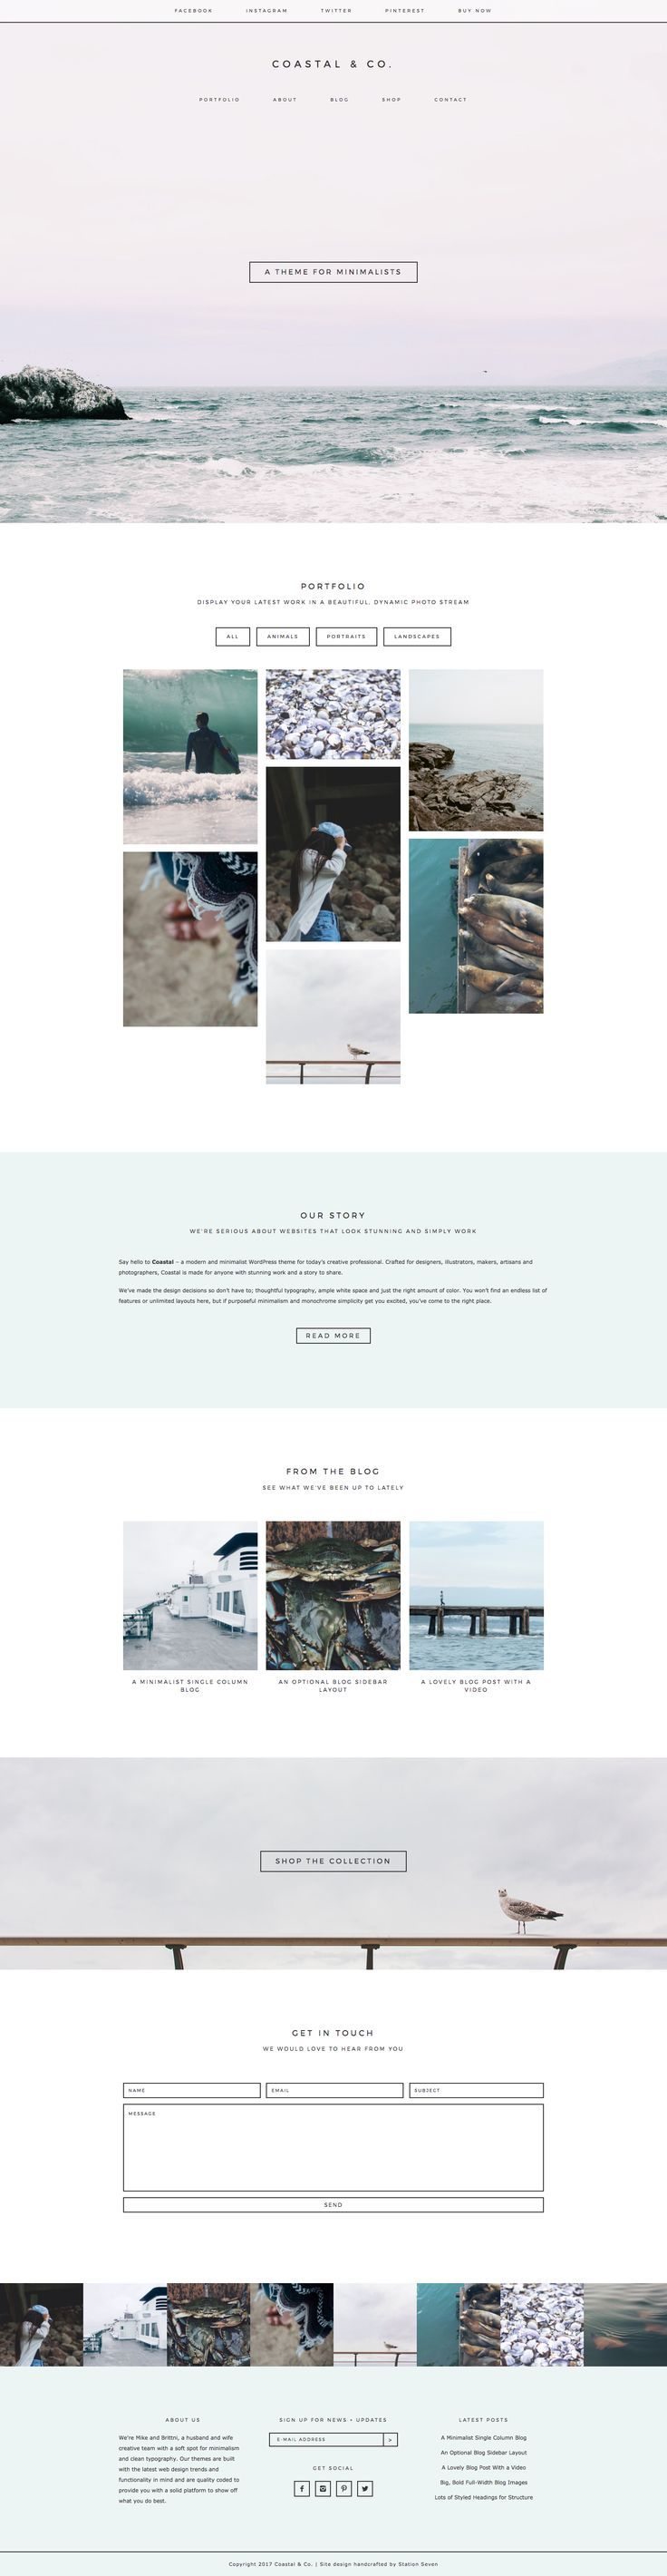 Say hello to Coastal 2.0 - a modern and minimalist WordPress theme for today's creative professional. Crafted for designers, makers, artisans and photographers, Coastal is made for anyone with stunning work and a story to share. We've added lots of great options, including a secondary sticky nav, portfolio category sorting, WooCommerce compatibility, a full-width Instagram footer and more.: